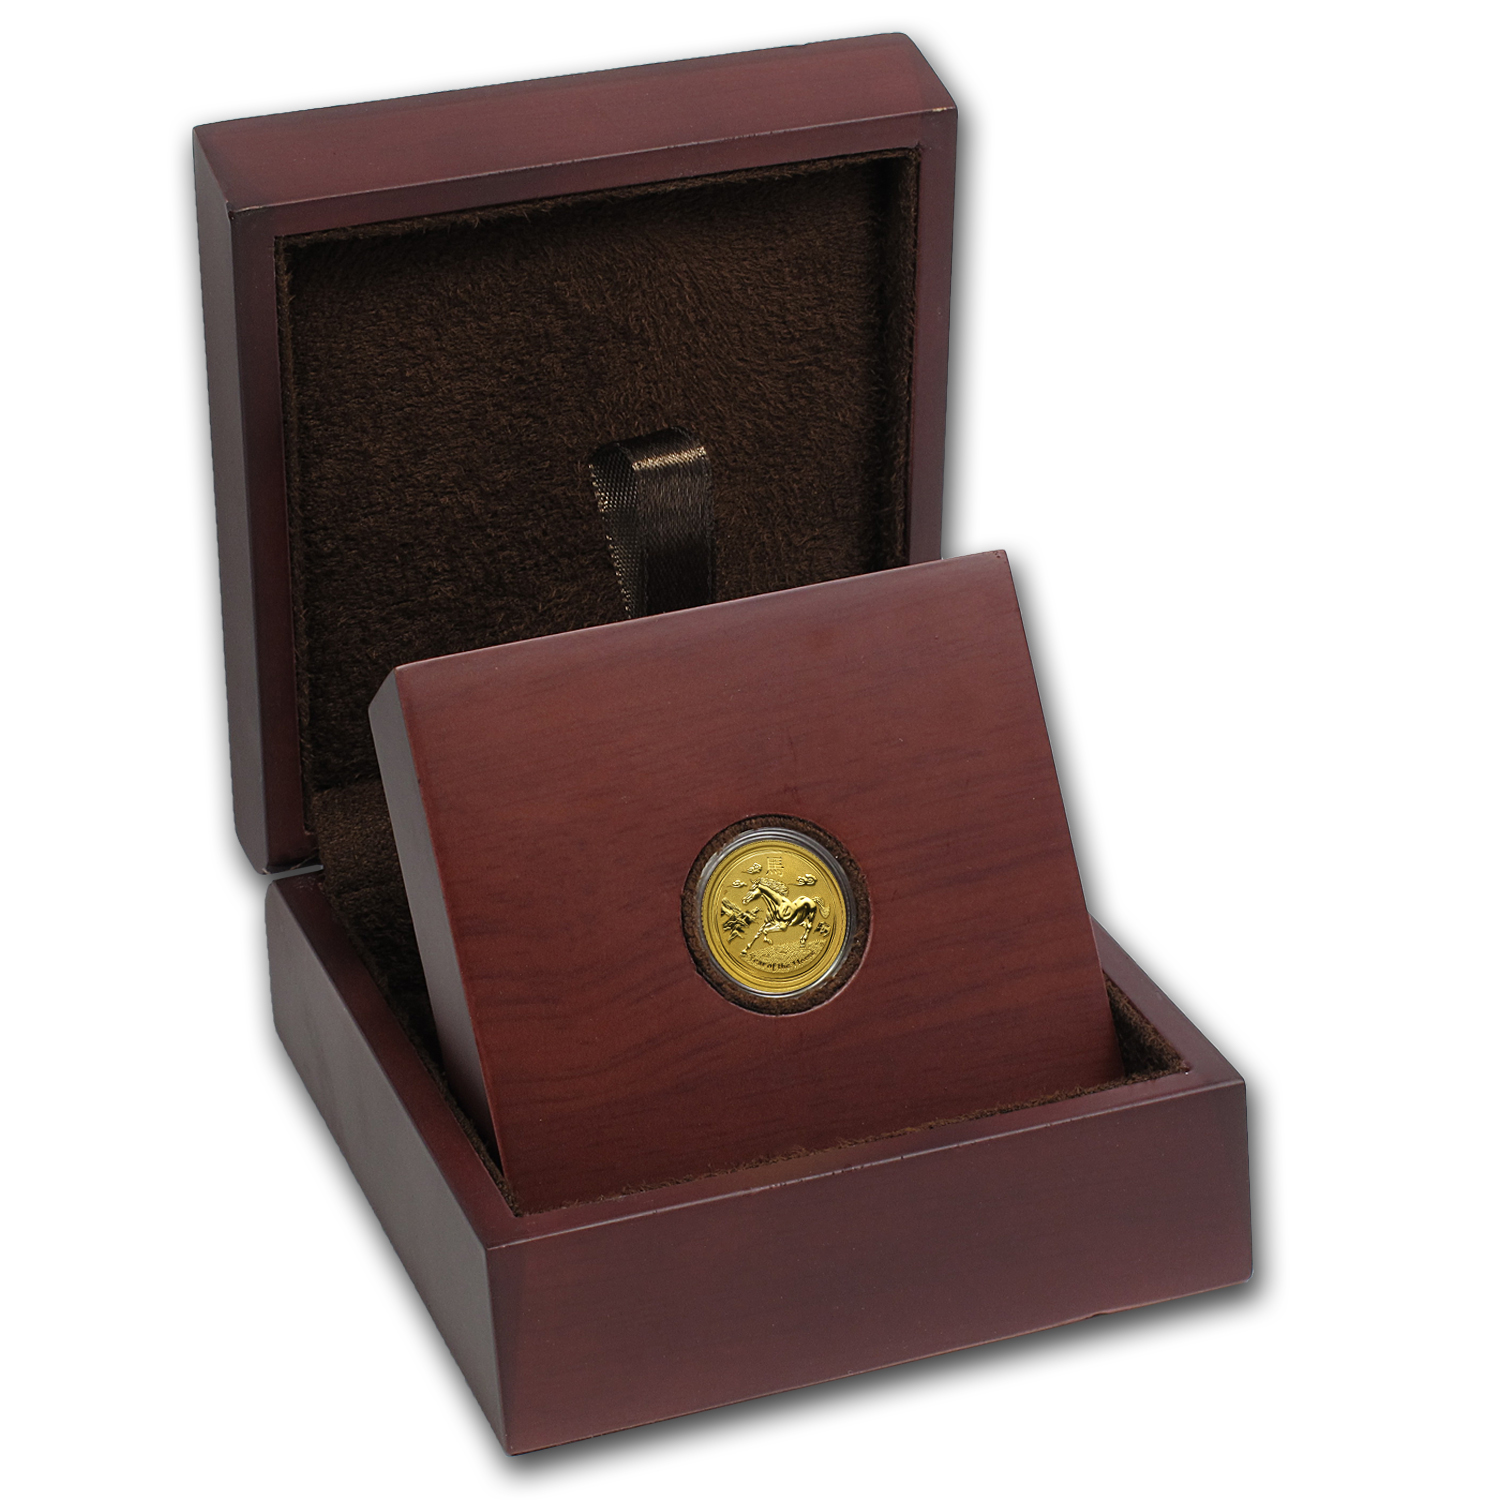 APMEX Wood Gift Box - 1/10 oz Perth Mint Gold Coin Series 2